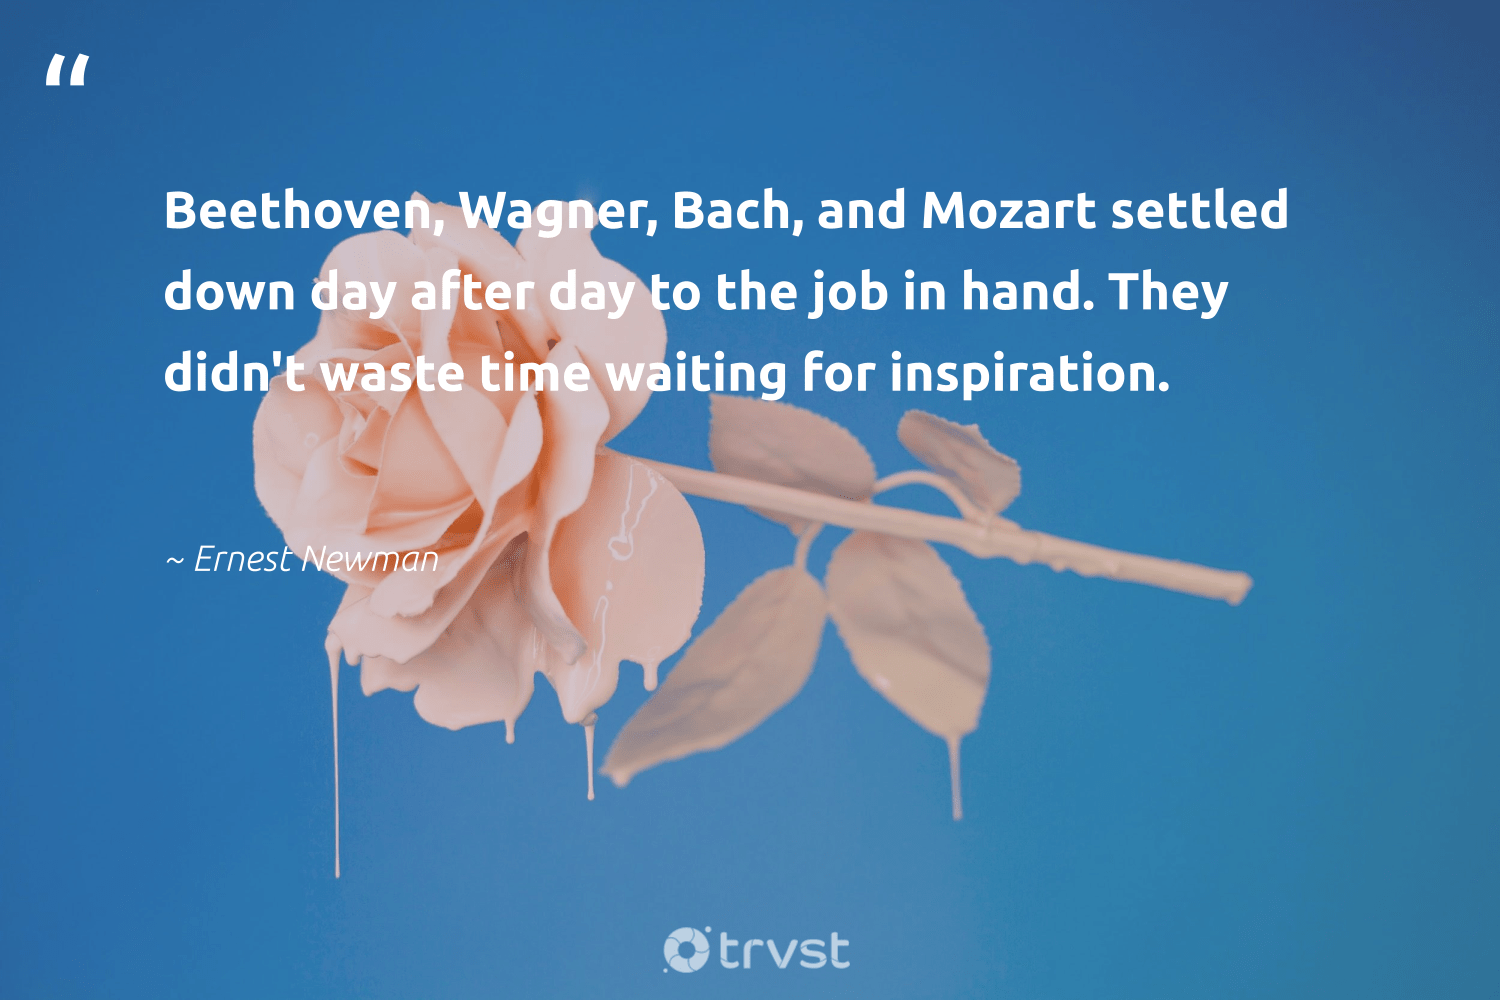 """""""Beethoven, Wagner, Bach, and Mozart settled down day after day to the job in hand. They didn't waste time waiting for inspiration.""""  - Ernest Newman #trvst #quotes #waste #futureofwork #collectiveaction #softskills #planetearthfirst #begreat #dosomething #nevergiveup #socialimpact #gogreen"""